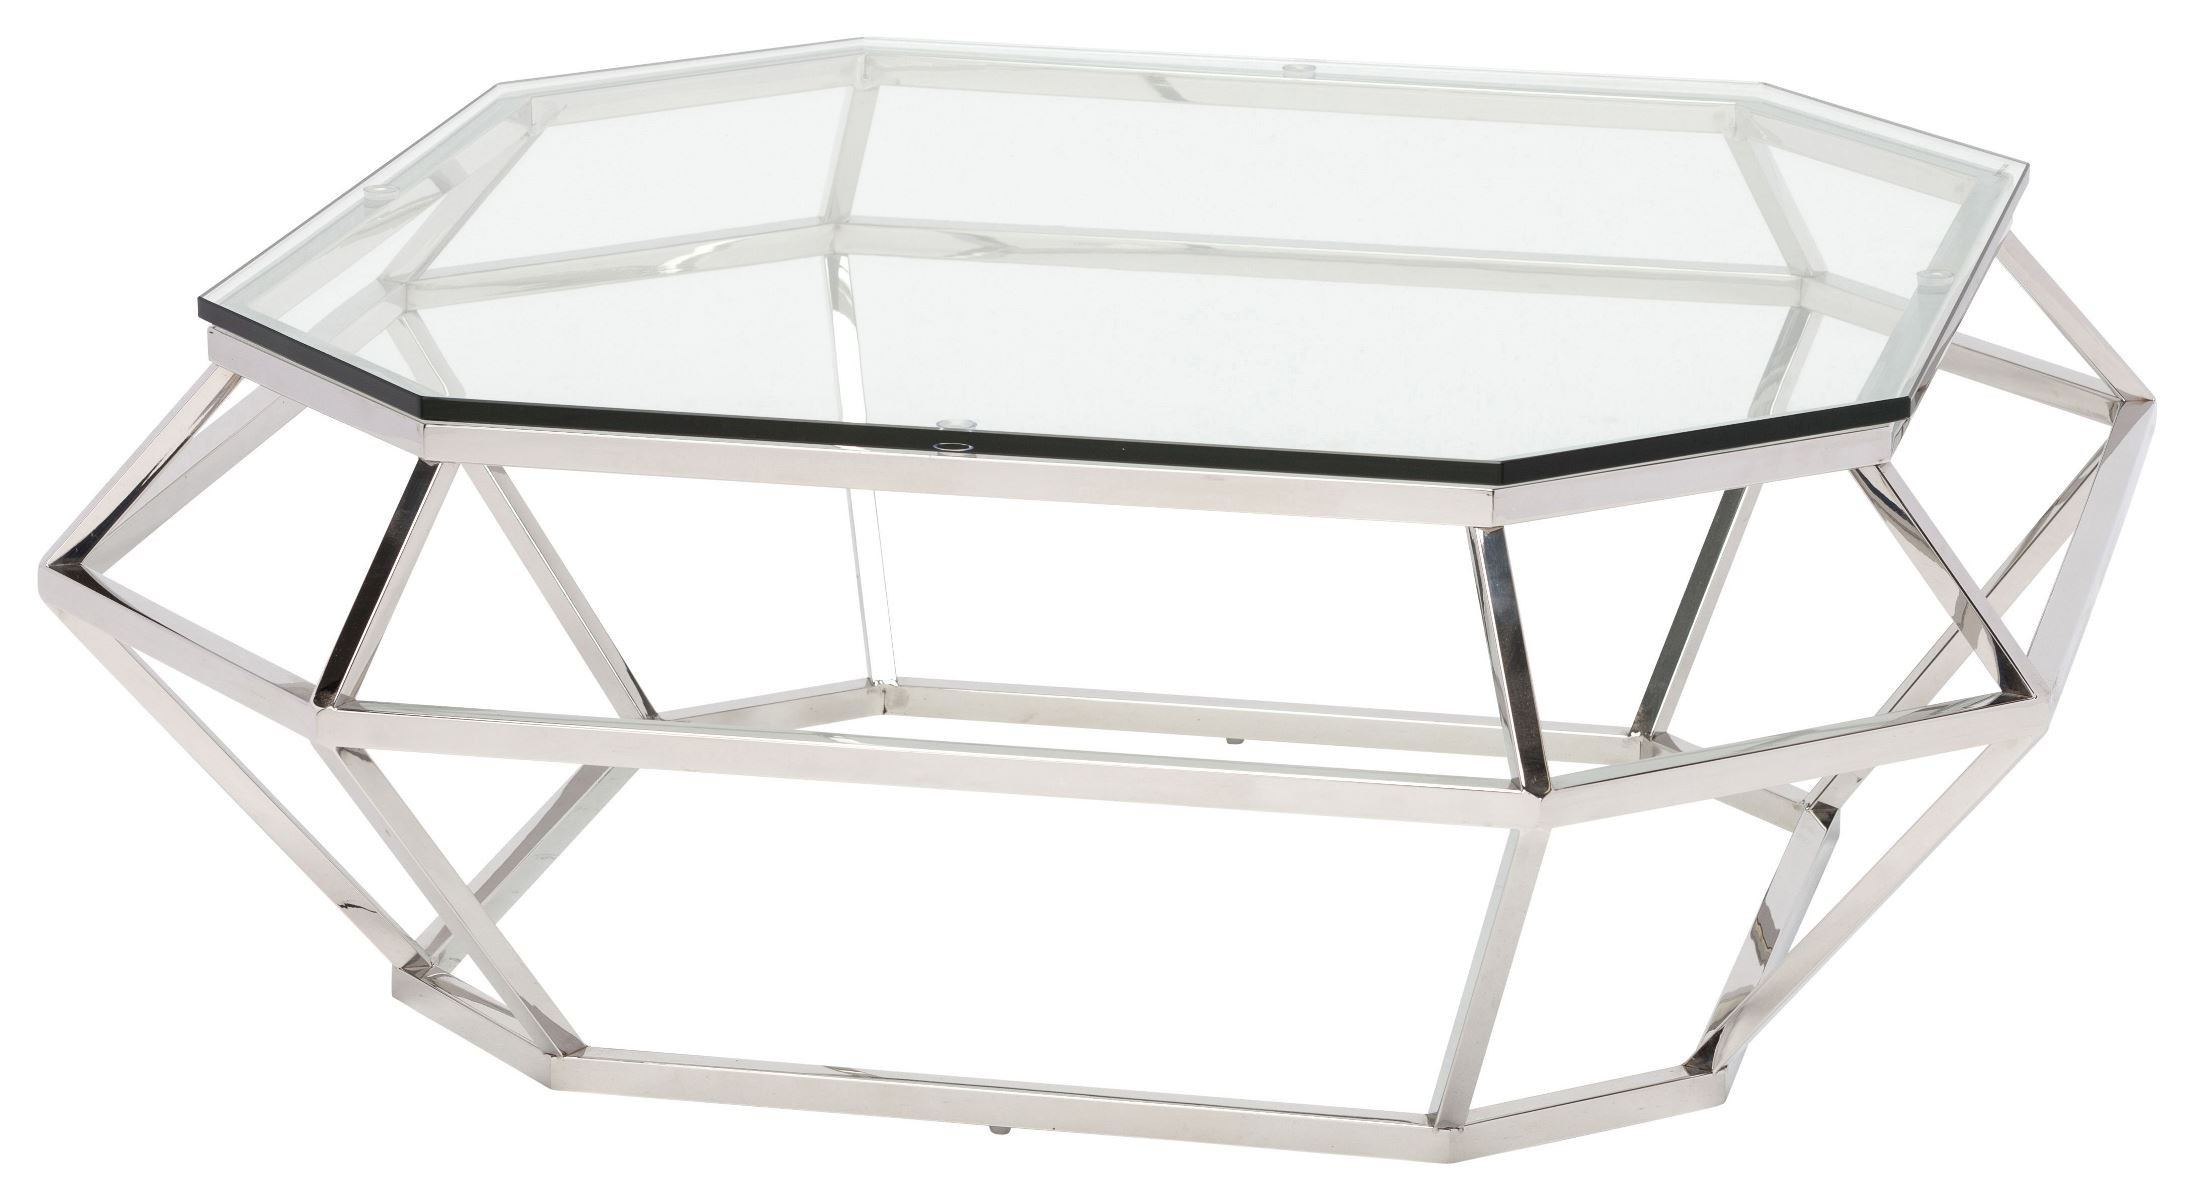 Diamond clear glass and silver metal square coffee table from nuevo coleman furniture Metal square coffee table